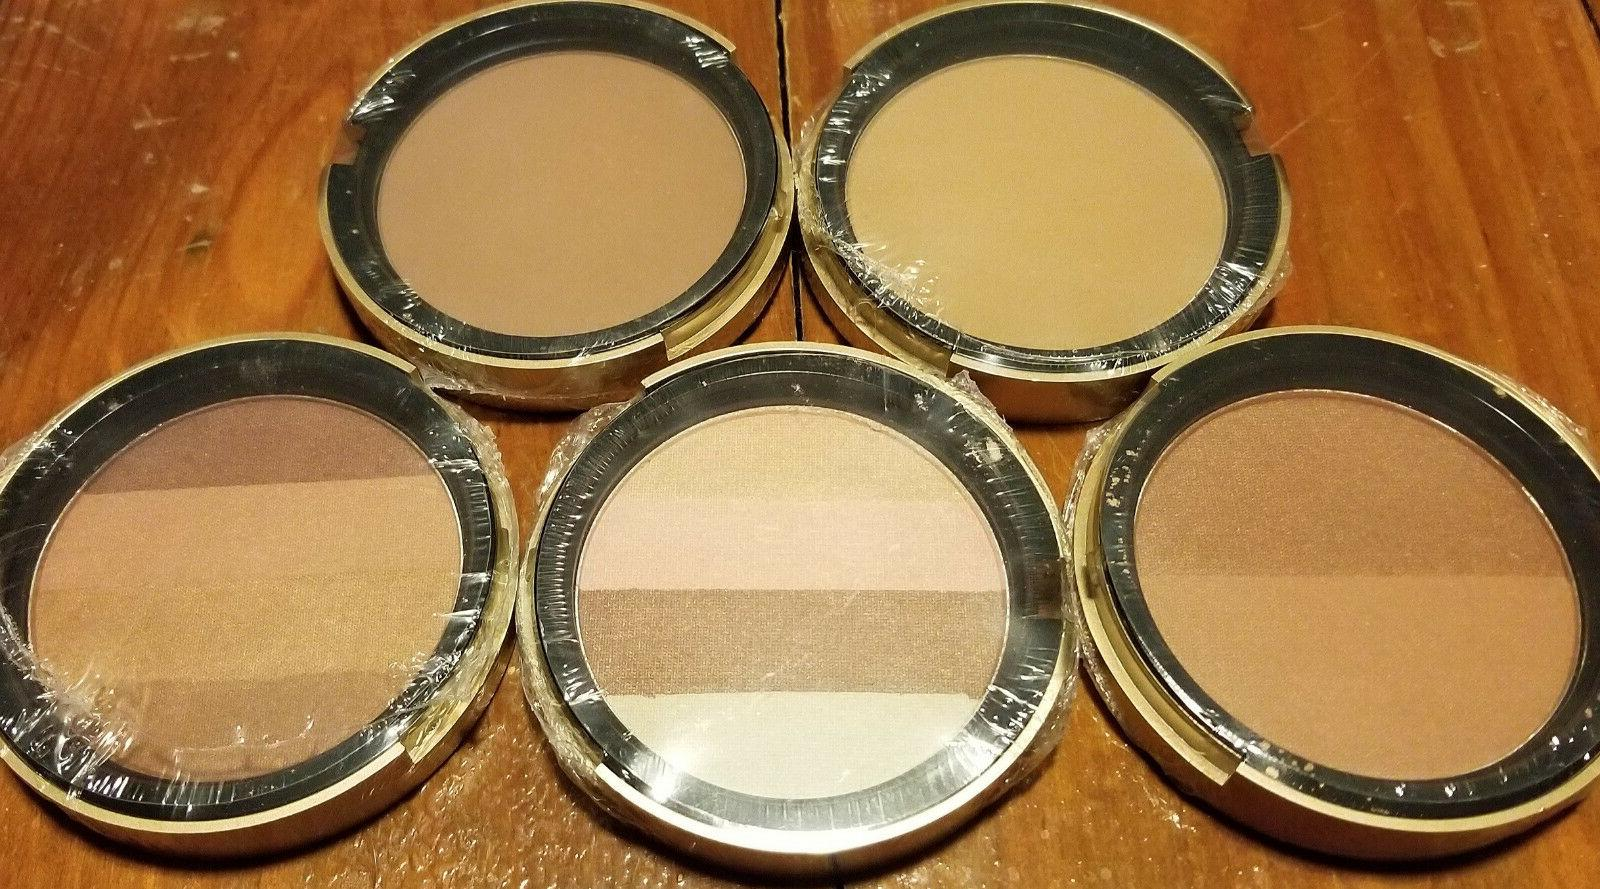 bronzer full size you choose chocolate soleil